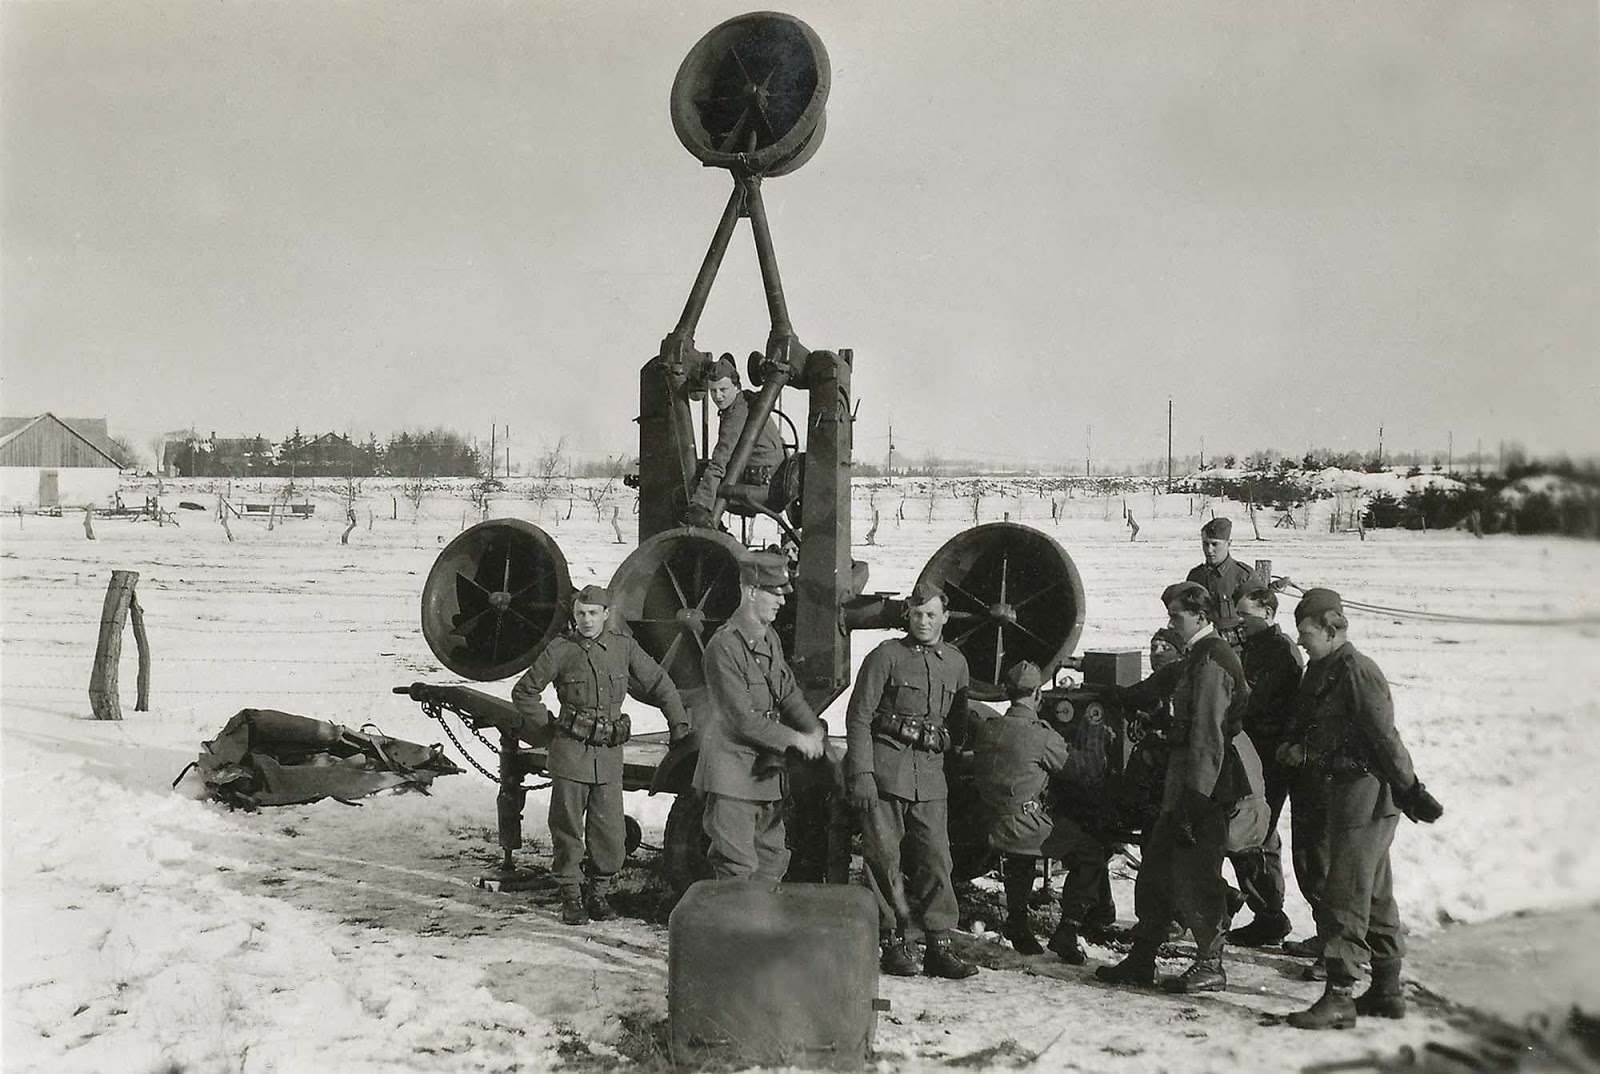 Swedish soldiers operating an acoustic locator in 1940.